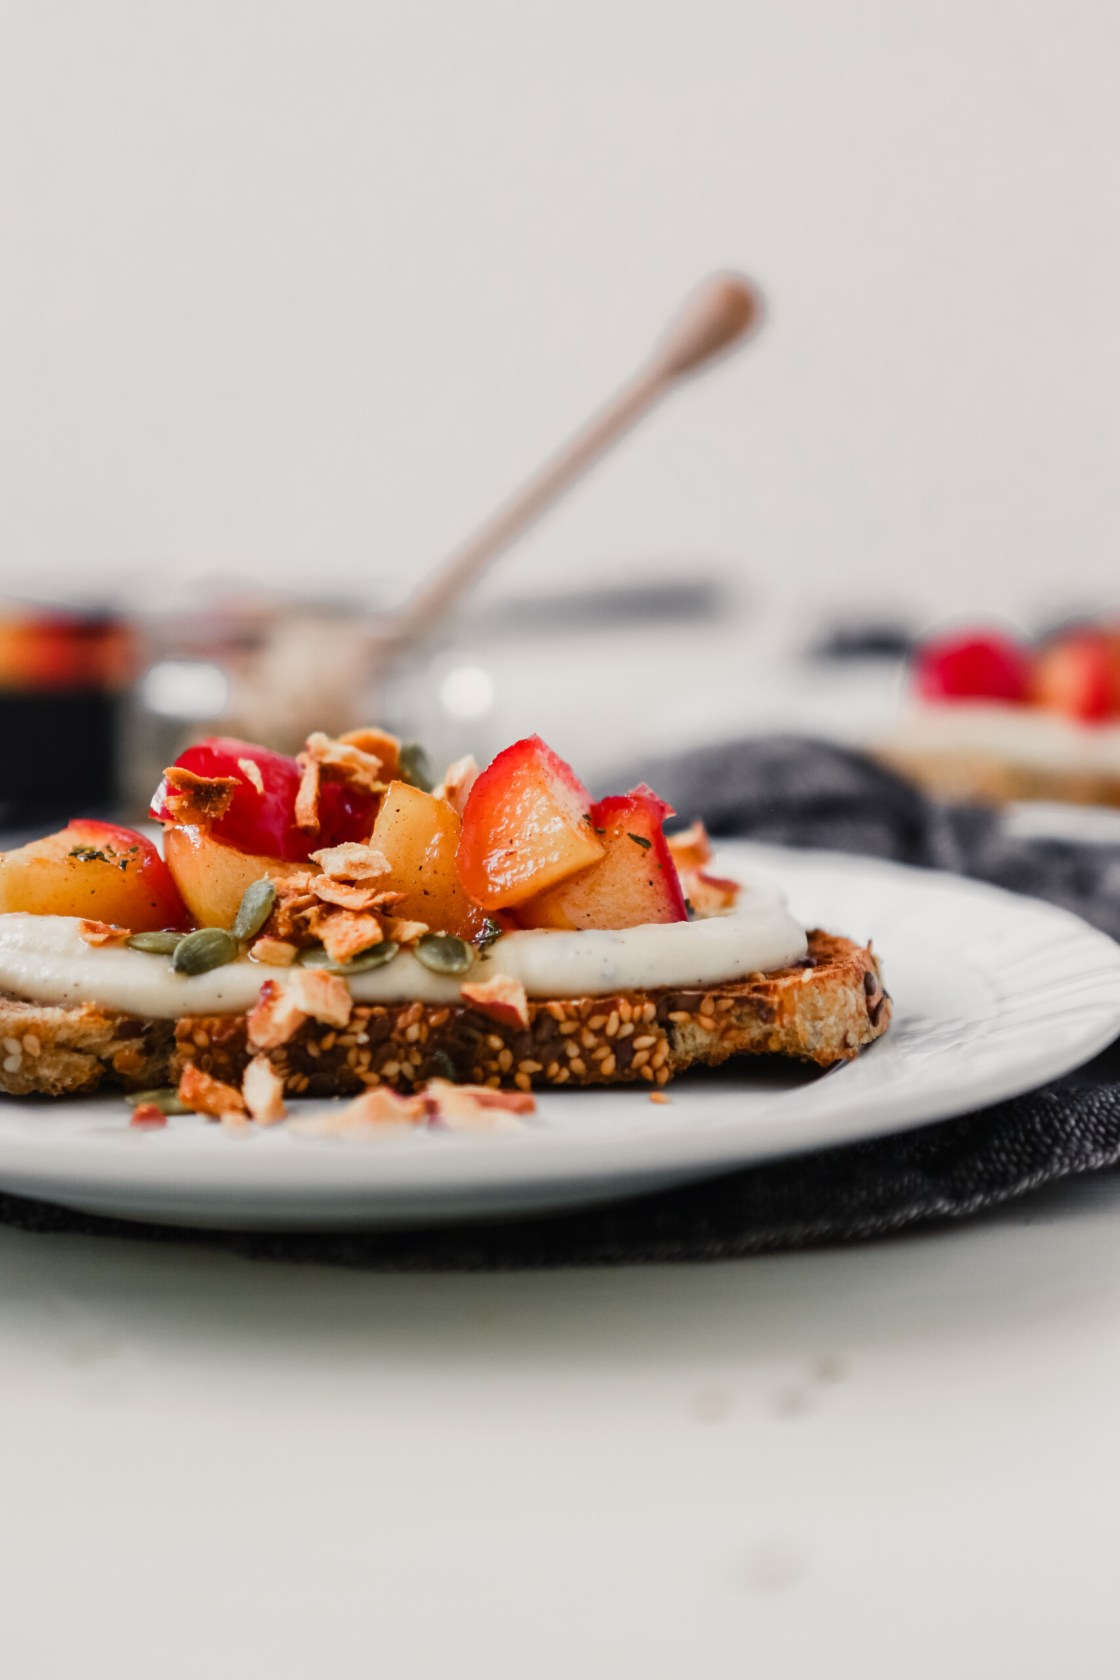 Photograph of wholegrain bread topped with ricotta, sauteed apples, and honey on a white plate